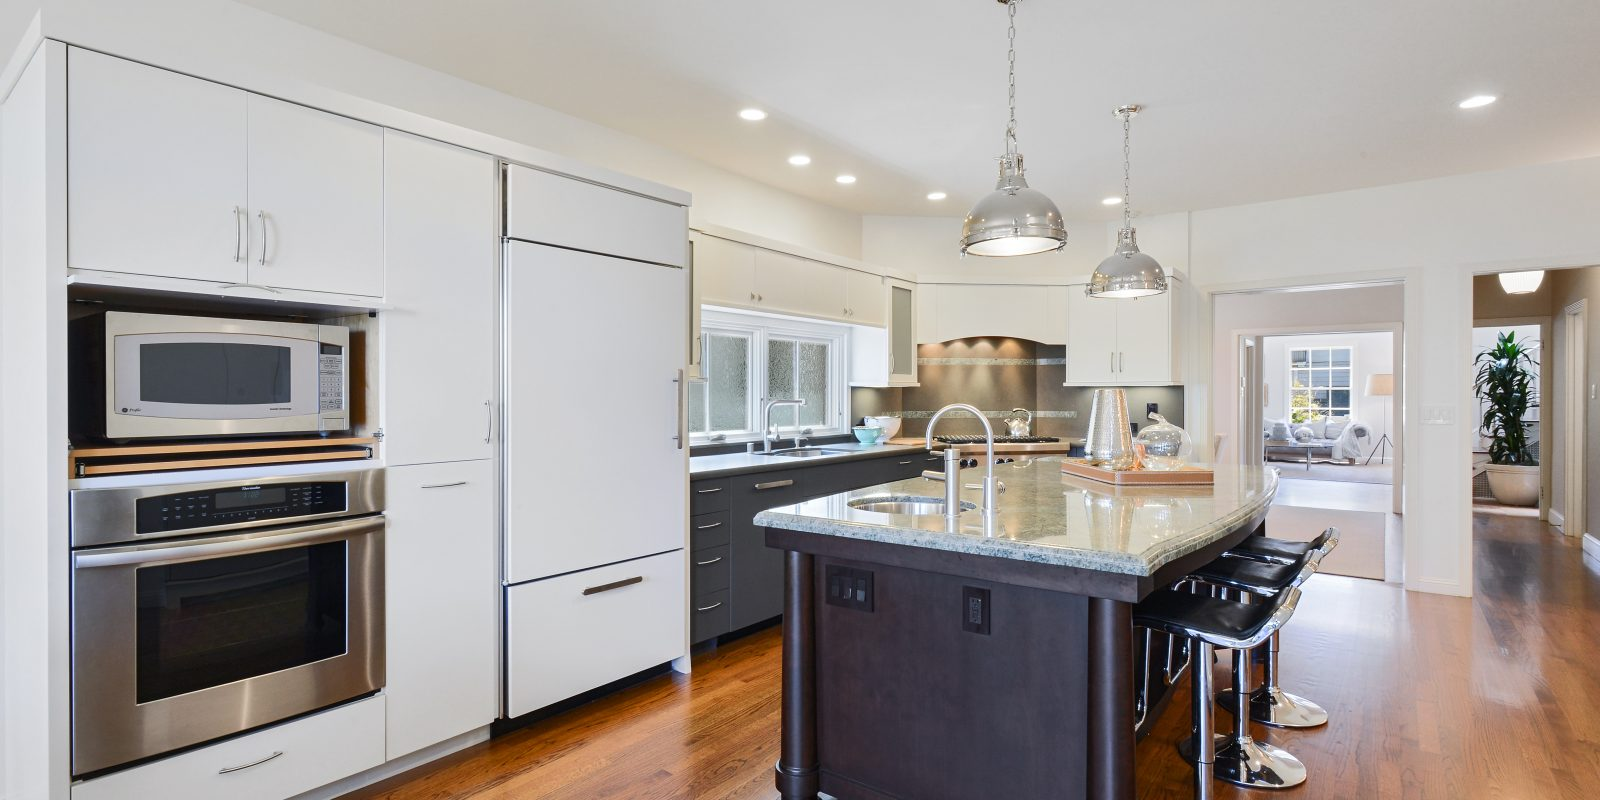 3358-washington-street-presidio-heights-san-francisco-home-for-sale-177289